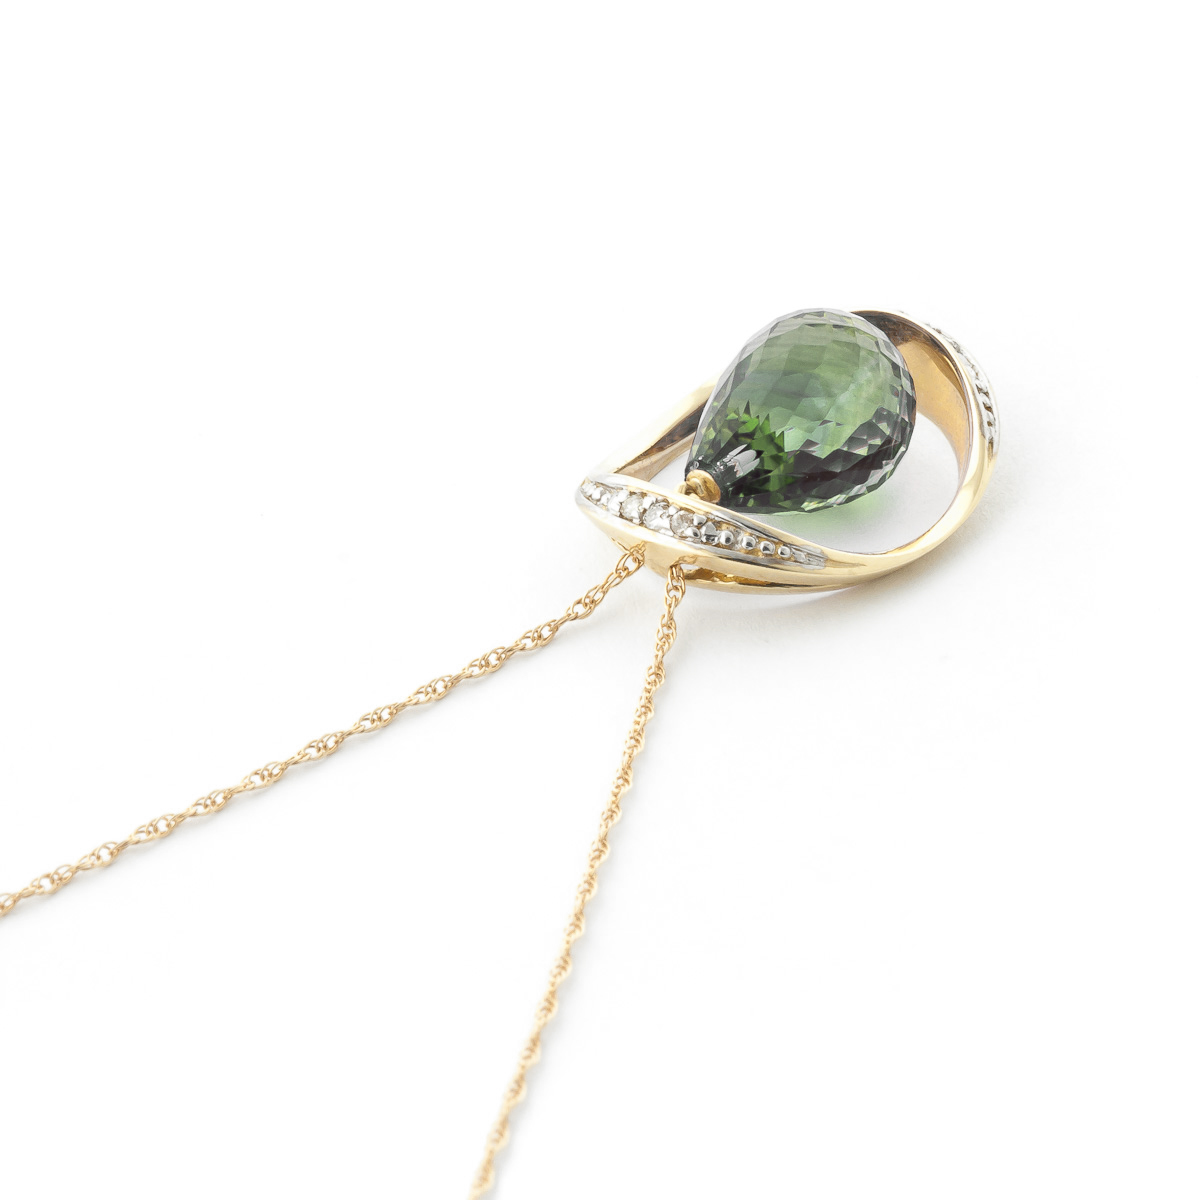 Green Amethyst & Diamond Pendant Necklace in 9ct Gold